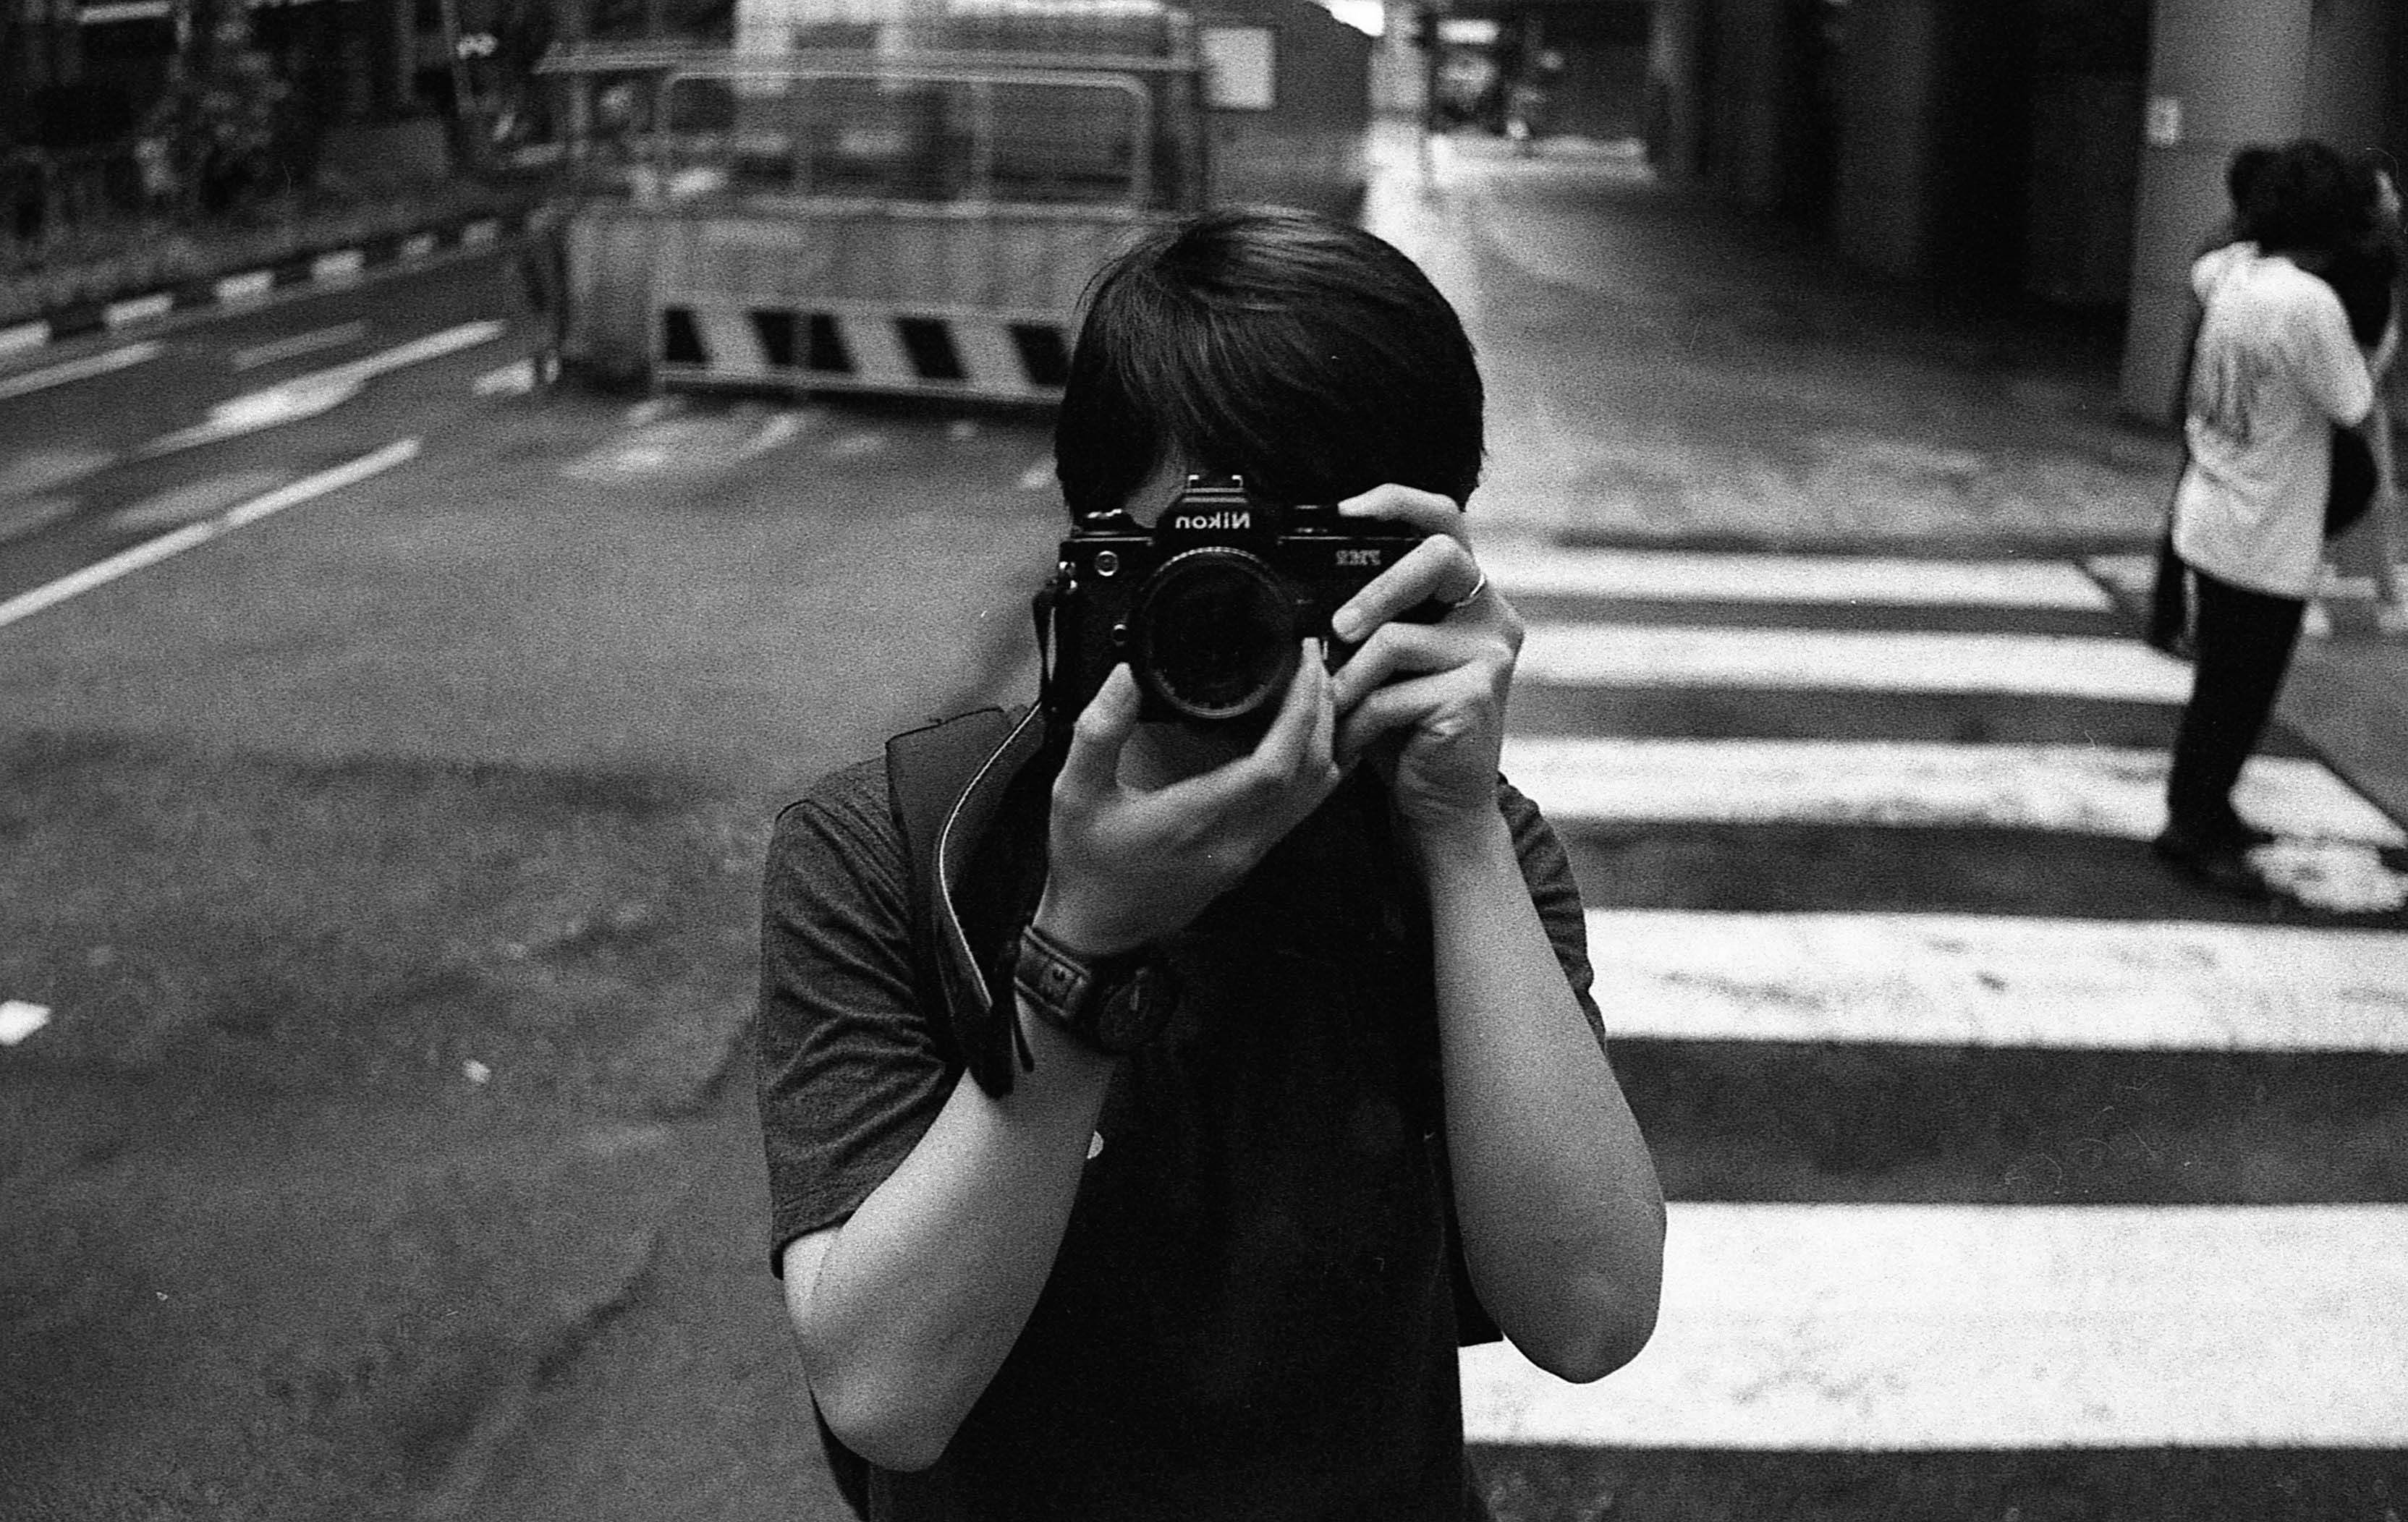 Ilford HP5Plus pushed to 1600. Yellow Filter. Self-develop with Kodak professional Tmax Dev